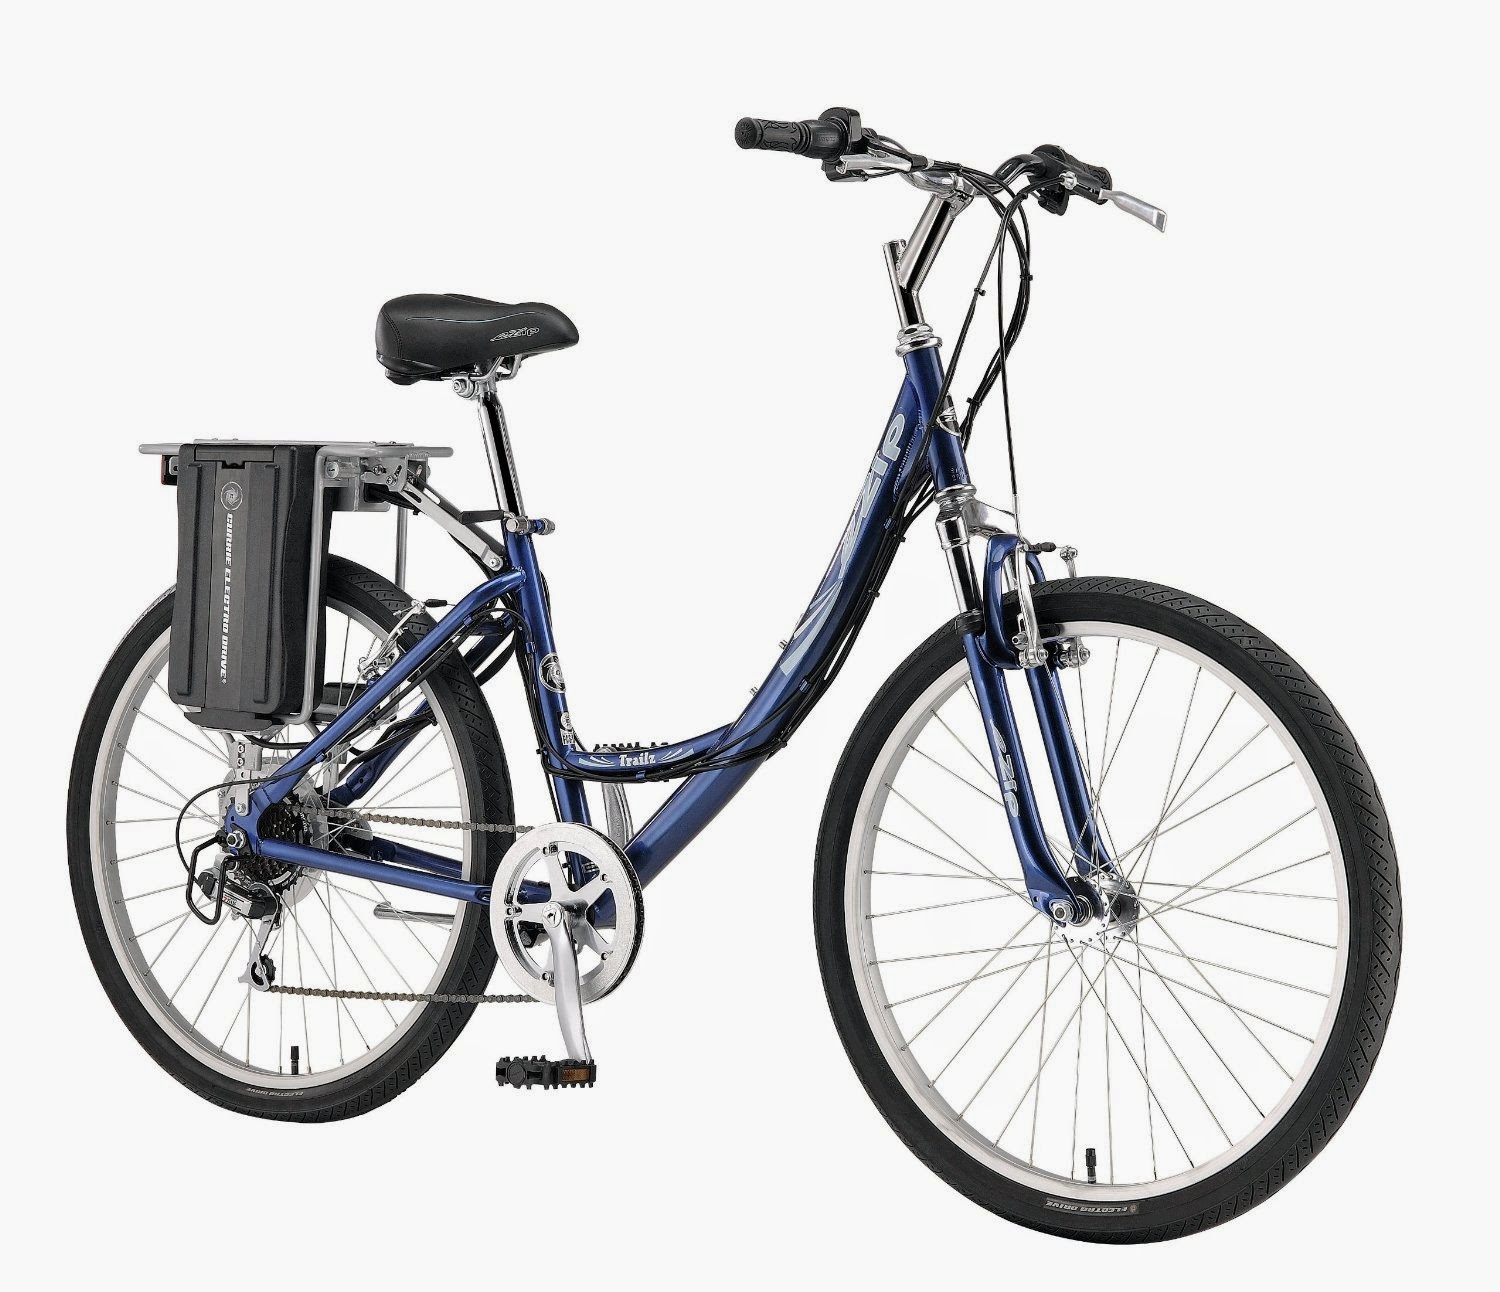 Currie Technologies eZip Women's Trailz Electric Bicycle, picture, review features & specifications